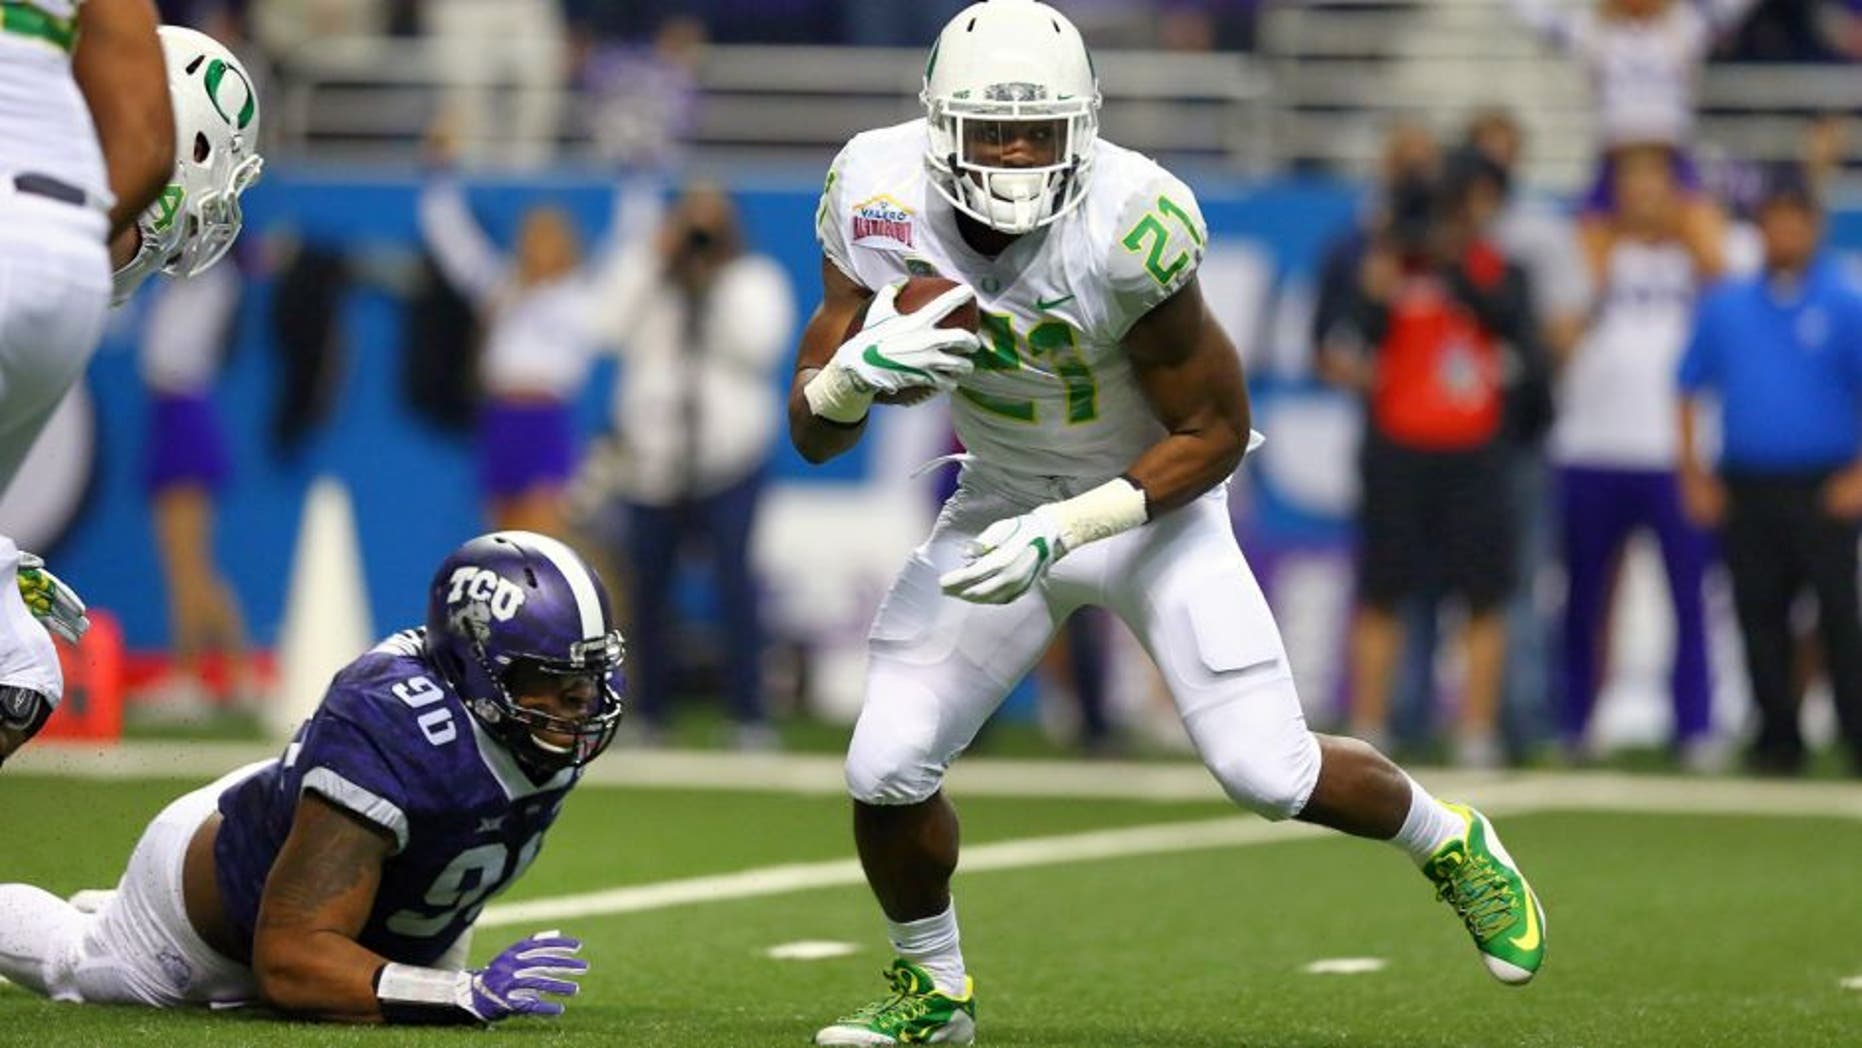 SAN ANTONIO, TX - JANUARY 02: Royce Freeman #21 of the Oregon Ducks runs the ball against the TCU Horned Frogs during the Valero Alamo Bowl at Alamodome on January 2, 2016 in San Antonio, Texas. (Photo by Ronald Martinez/Getty Images)